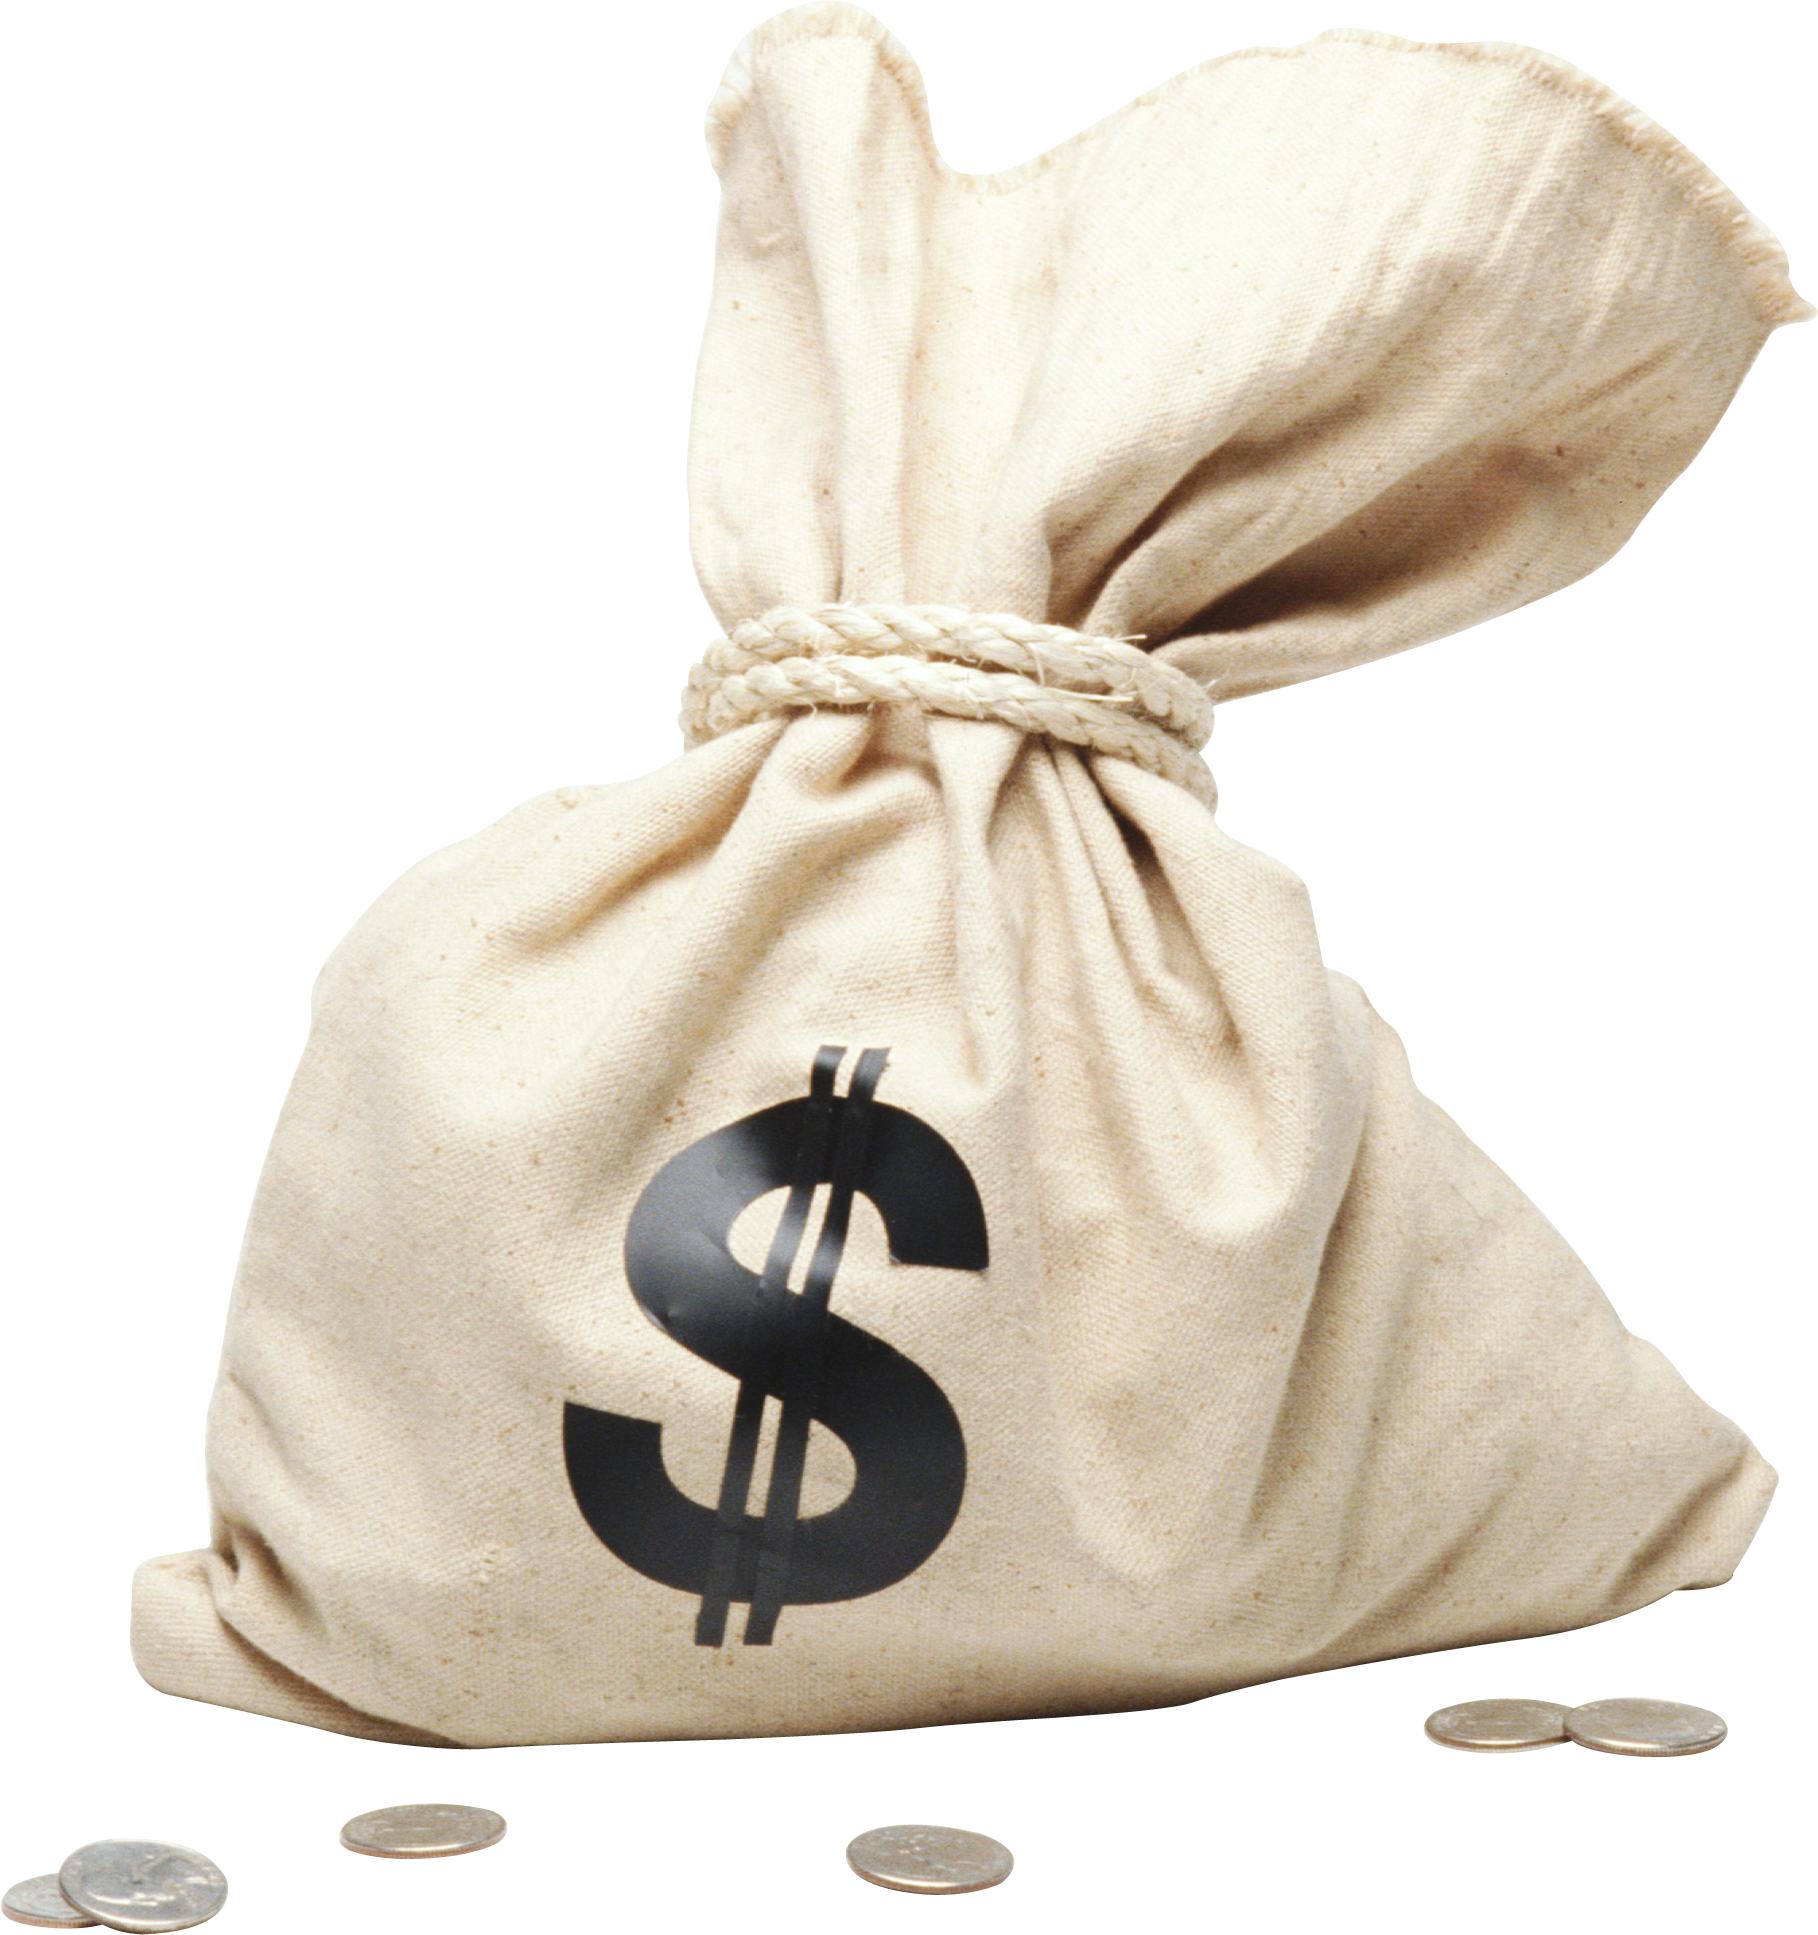 Image free pictures download. Money bag png